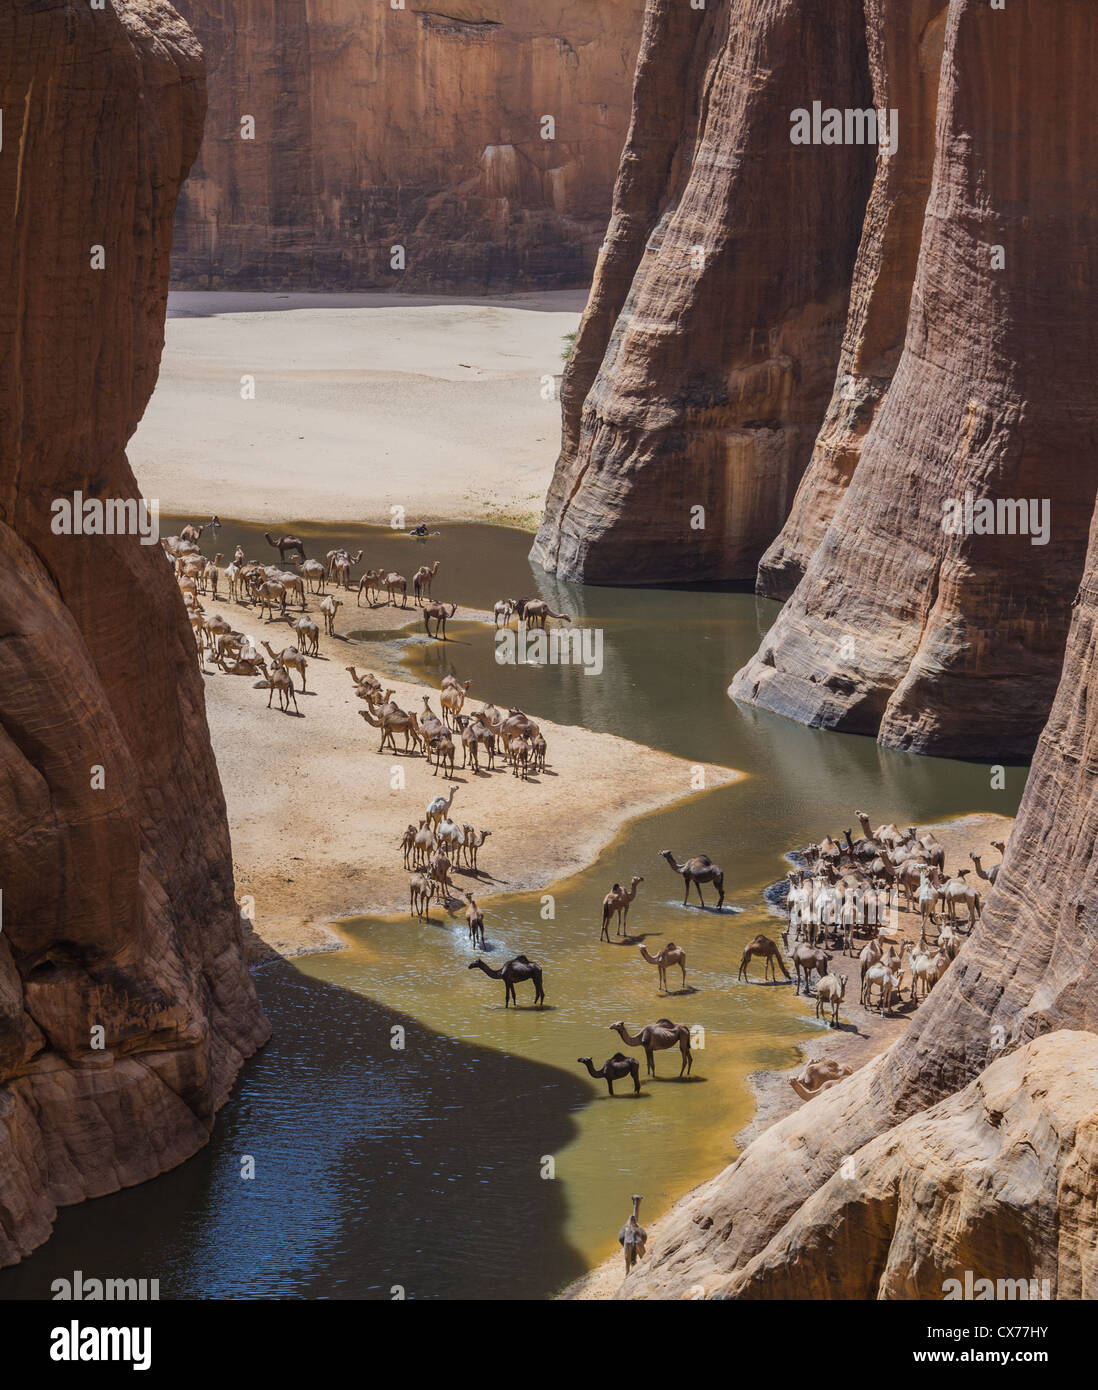 Camels at Waterhole Ennedi Mountains Chad - Stock Image